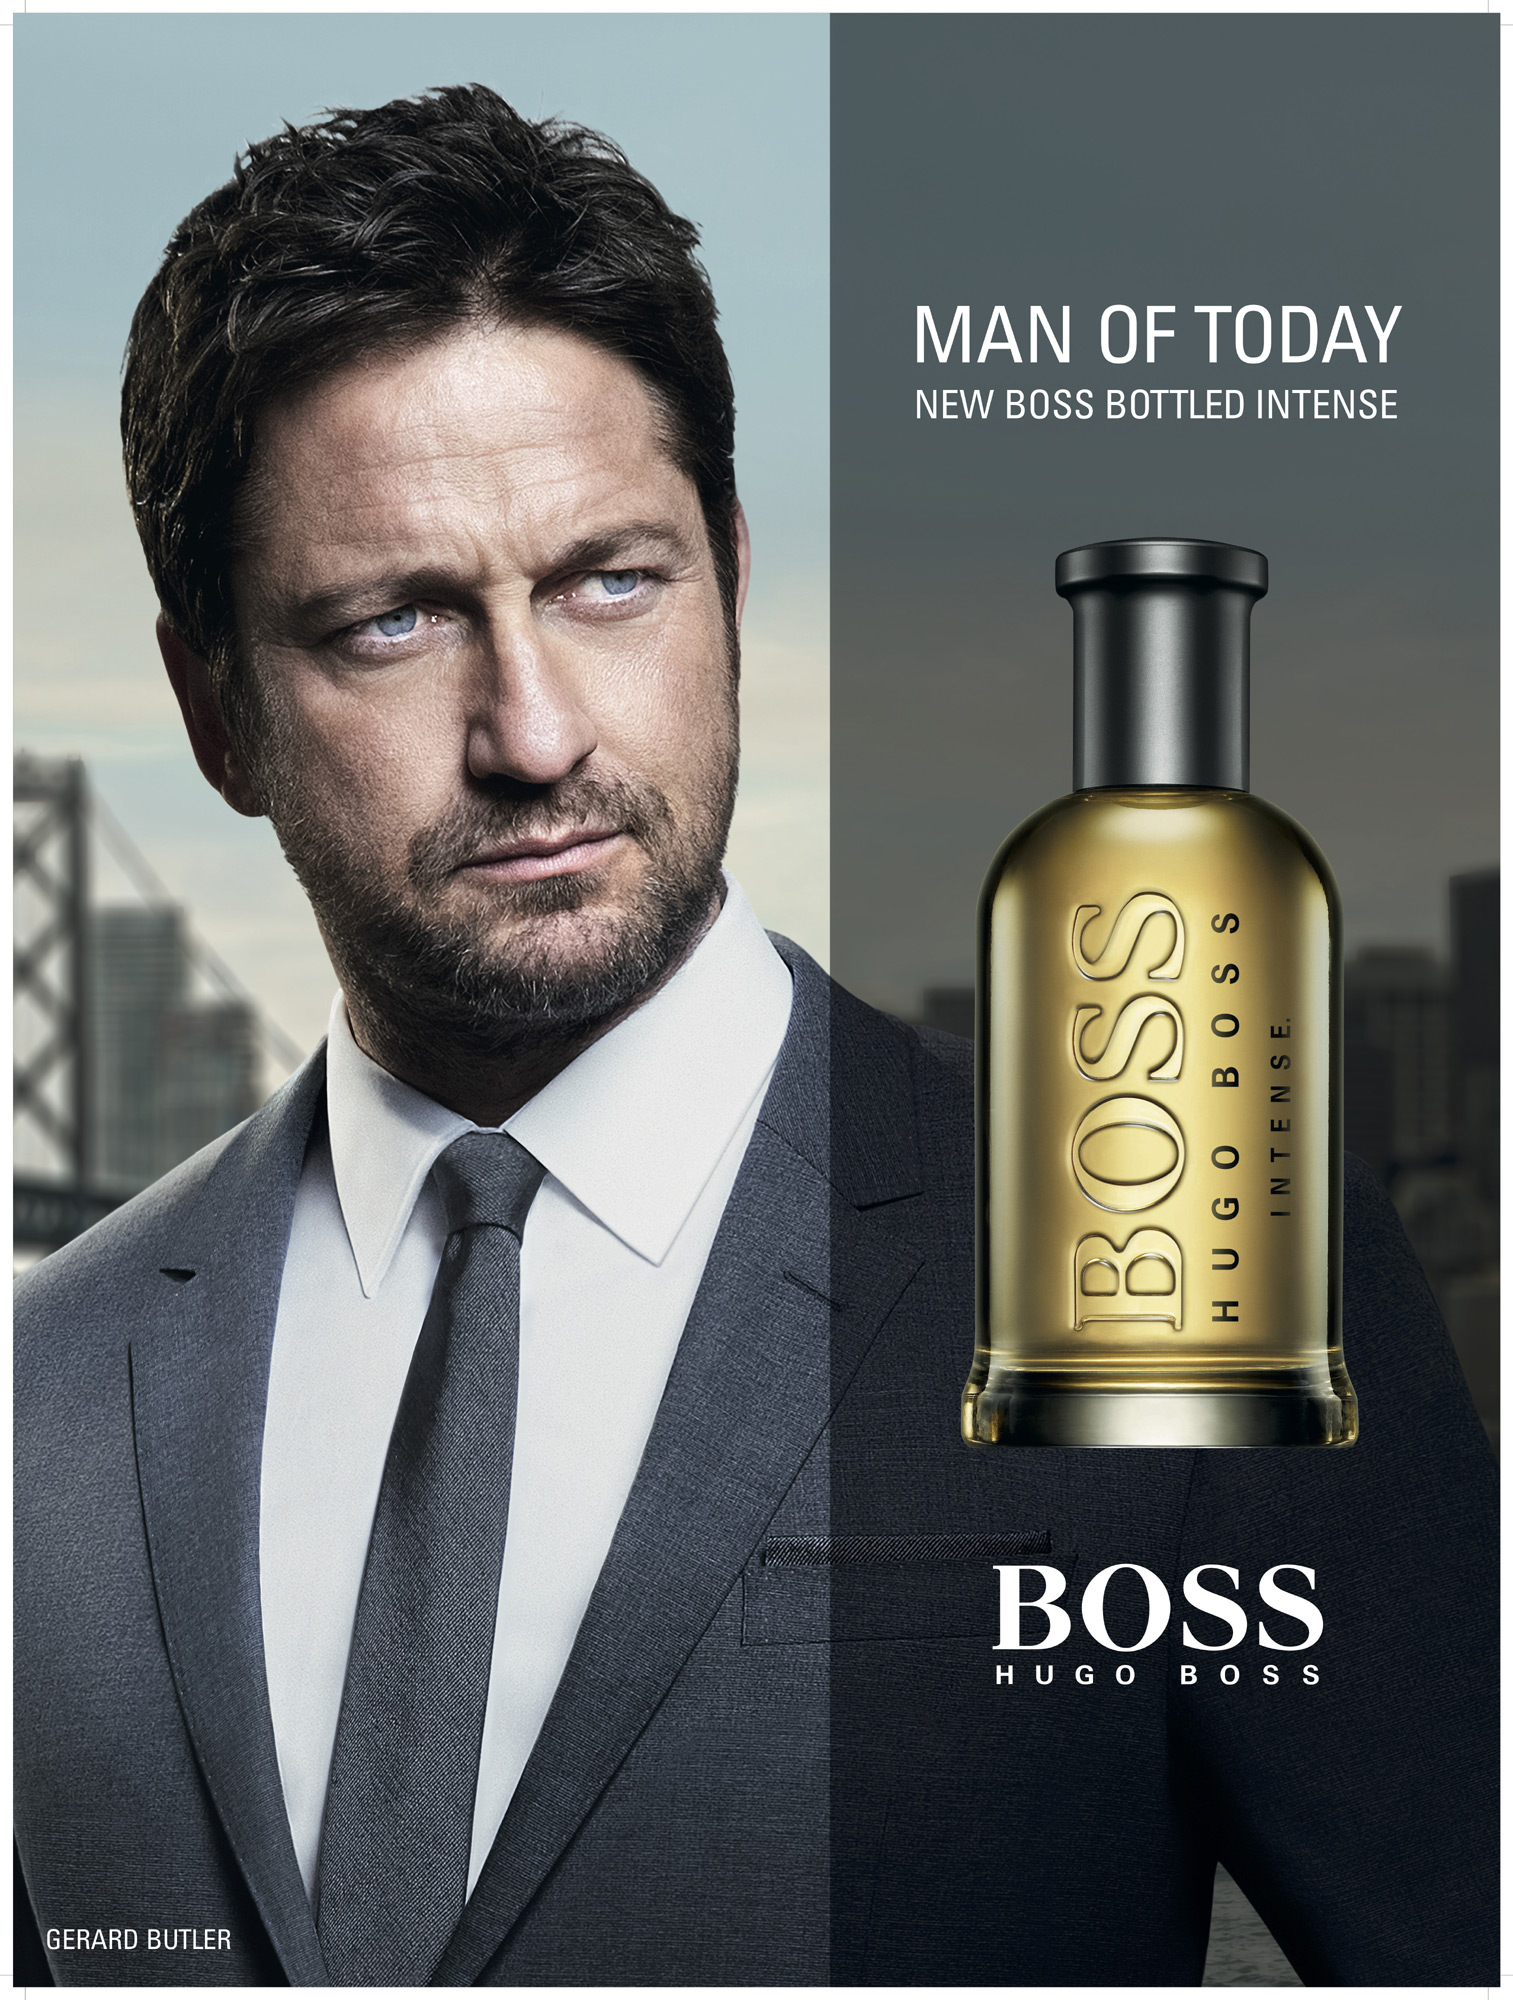 boss bottled intense hugo boss cologne a new fragrance. Black Bedroom Furniture Sets. Home Design Ideas